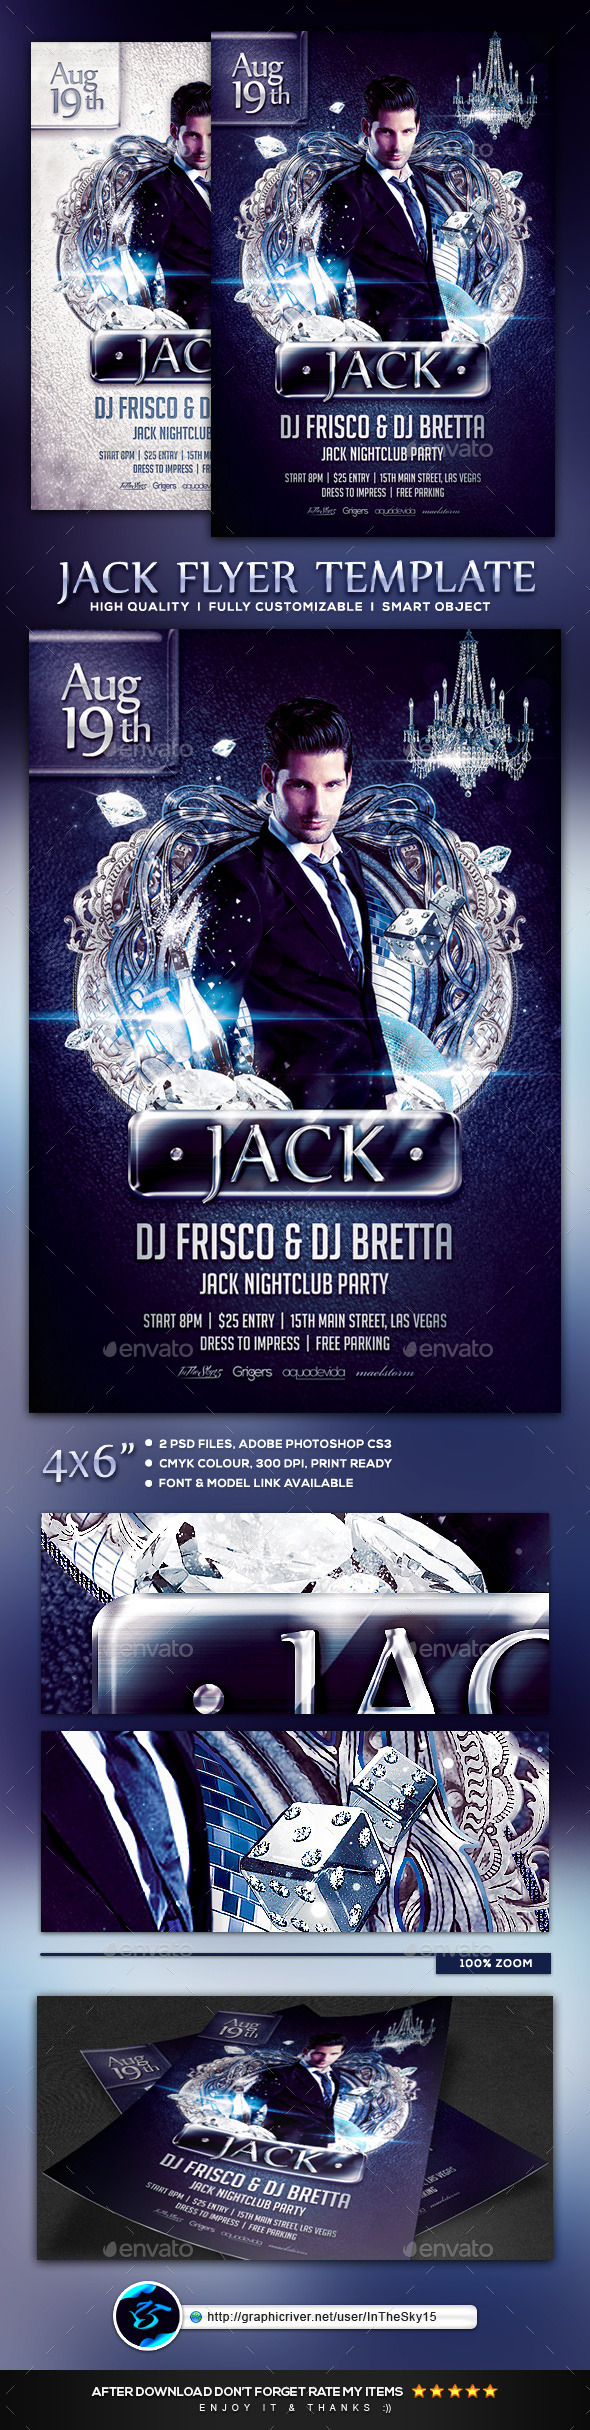 Jack Flyer Template - Flyers Print Templates